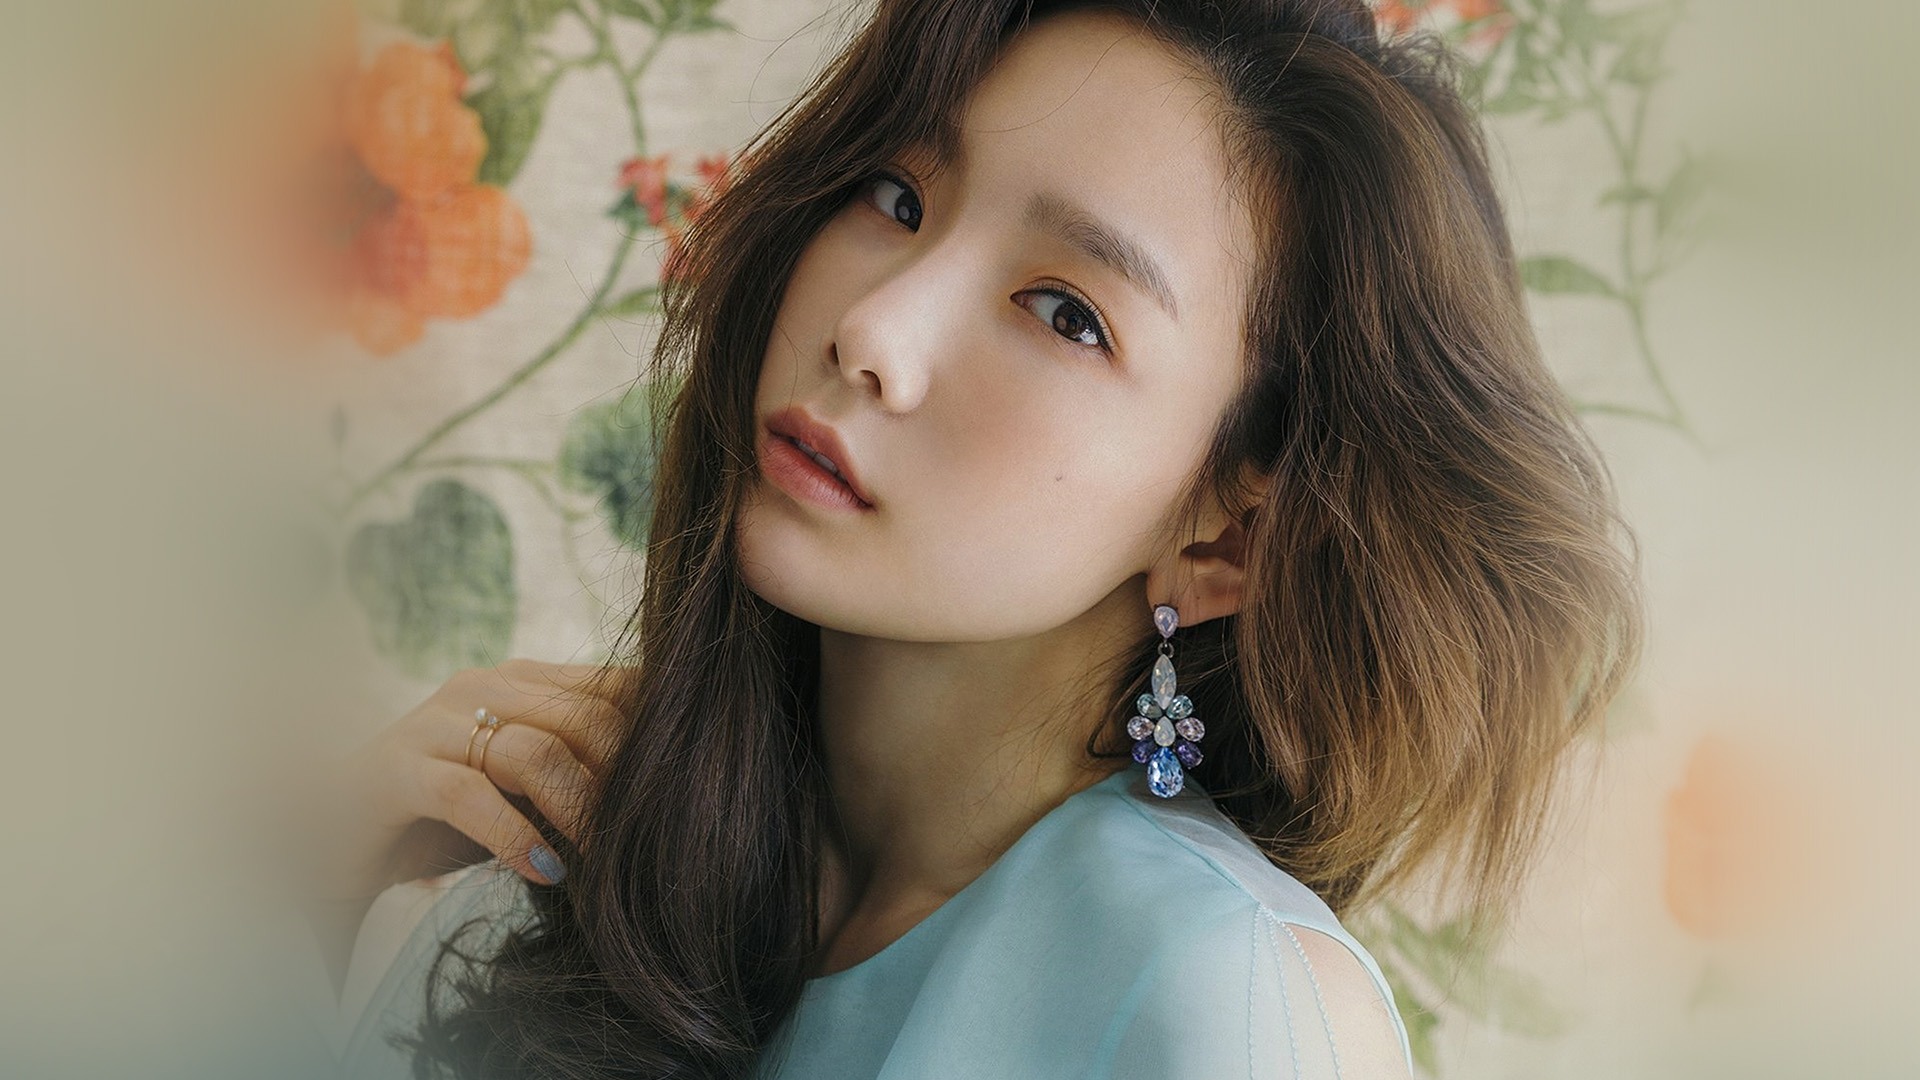 Cute Wallpapers For Girls In The Fall Hm37 Kpop Snsd Taeyeon Flower Girl Wallpaper